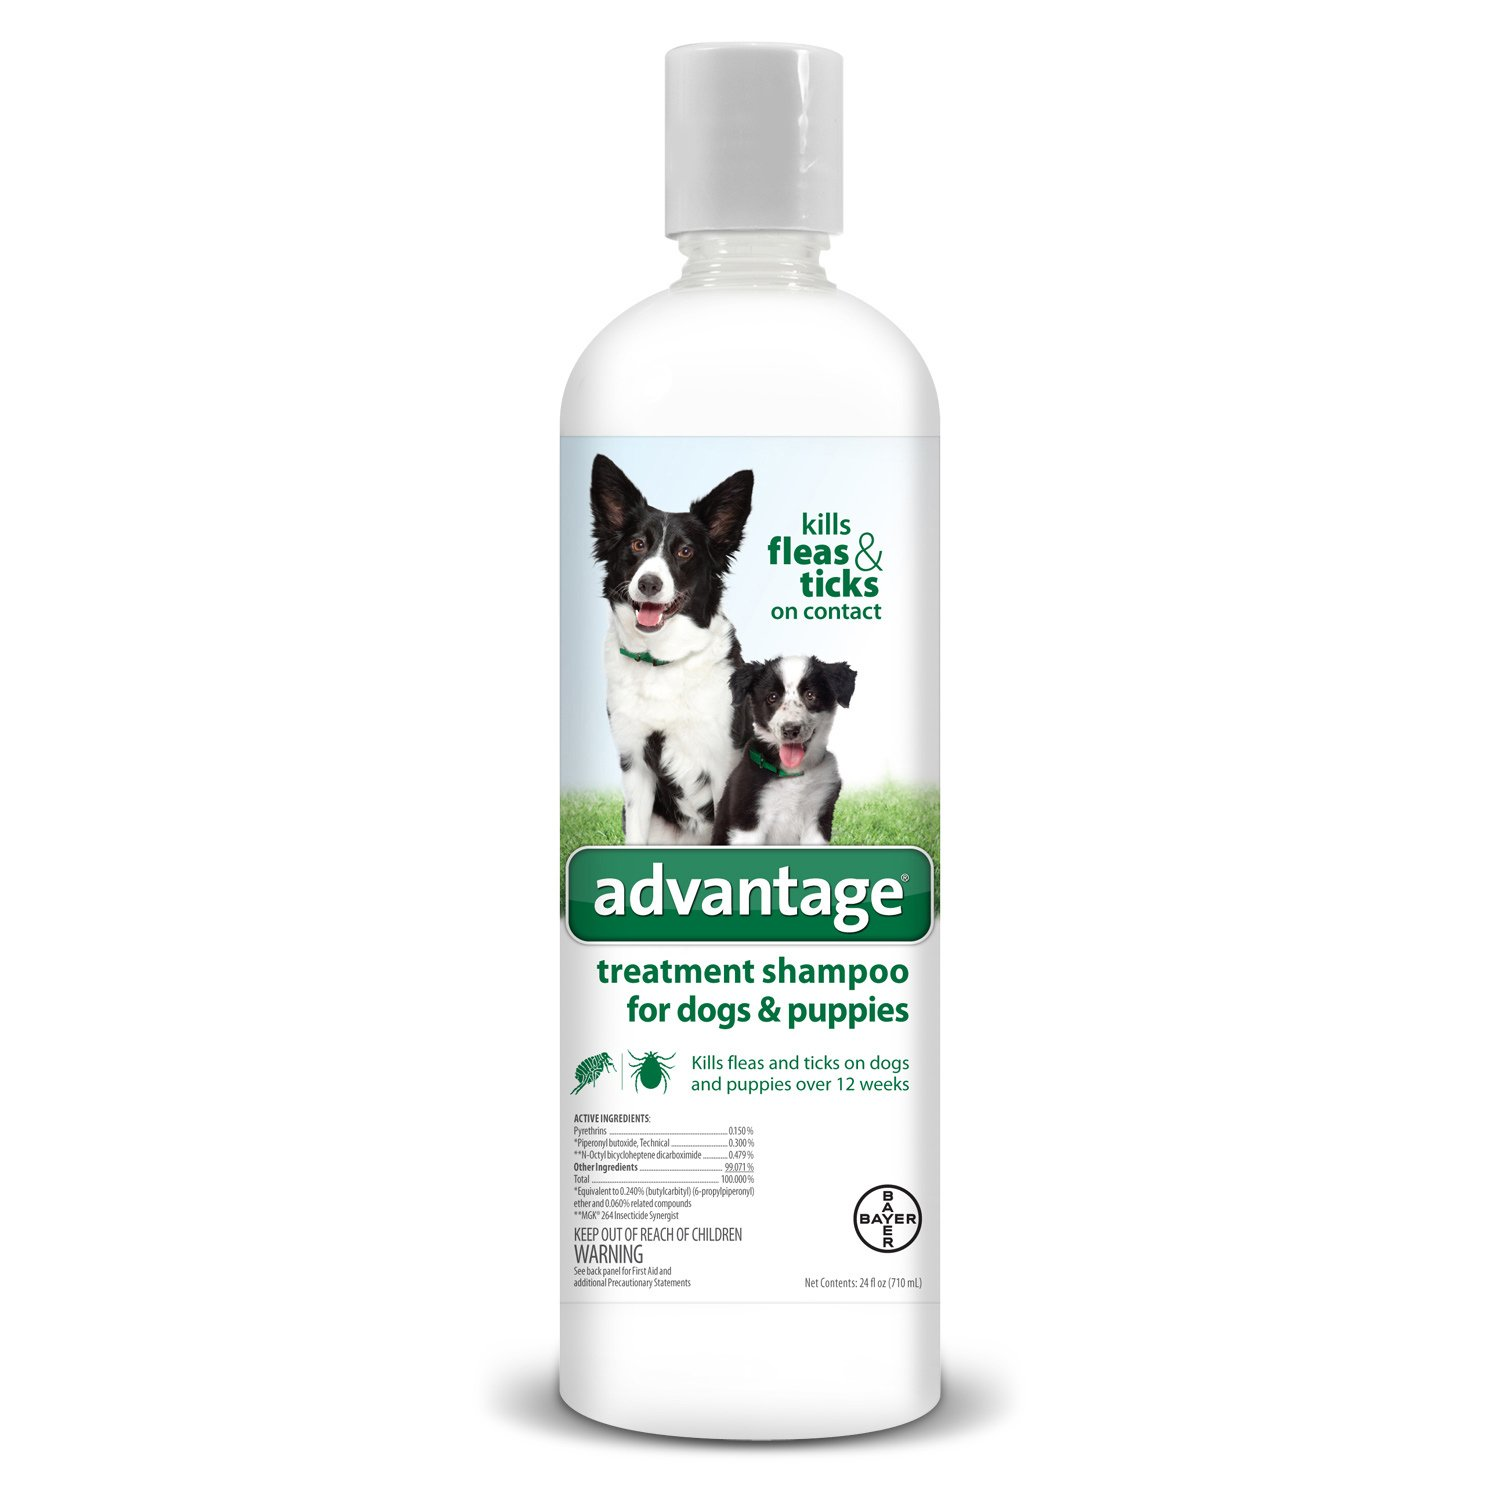 Bayer Animal Health Advantage Shampoo Flea and Tick Treatment for Dogs and Puppies 24 oz